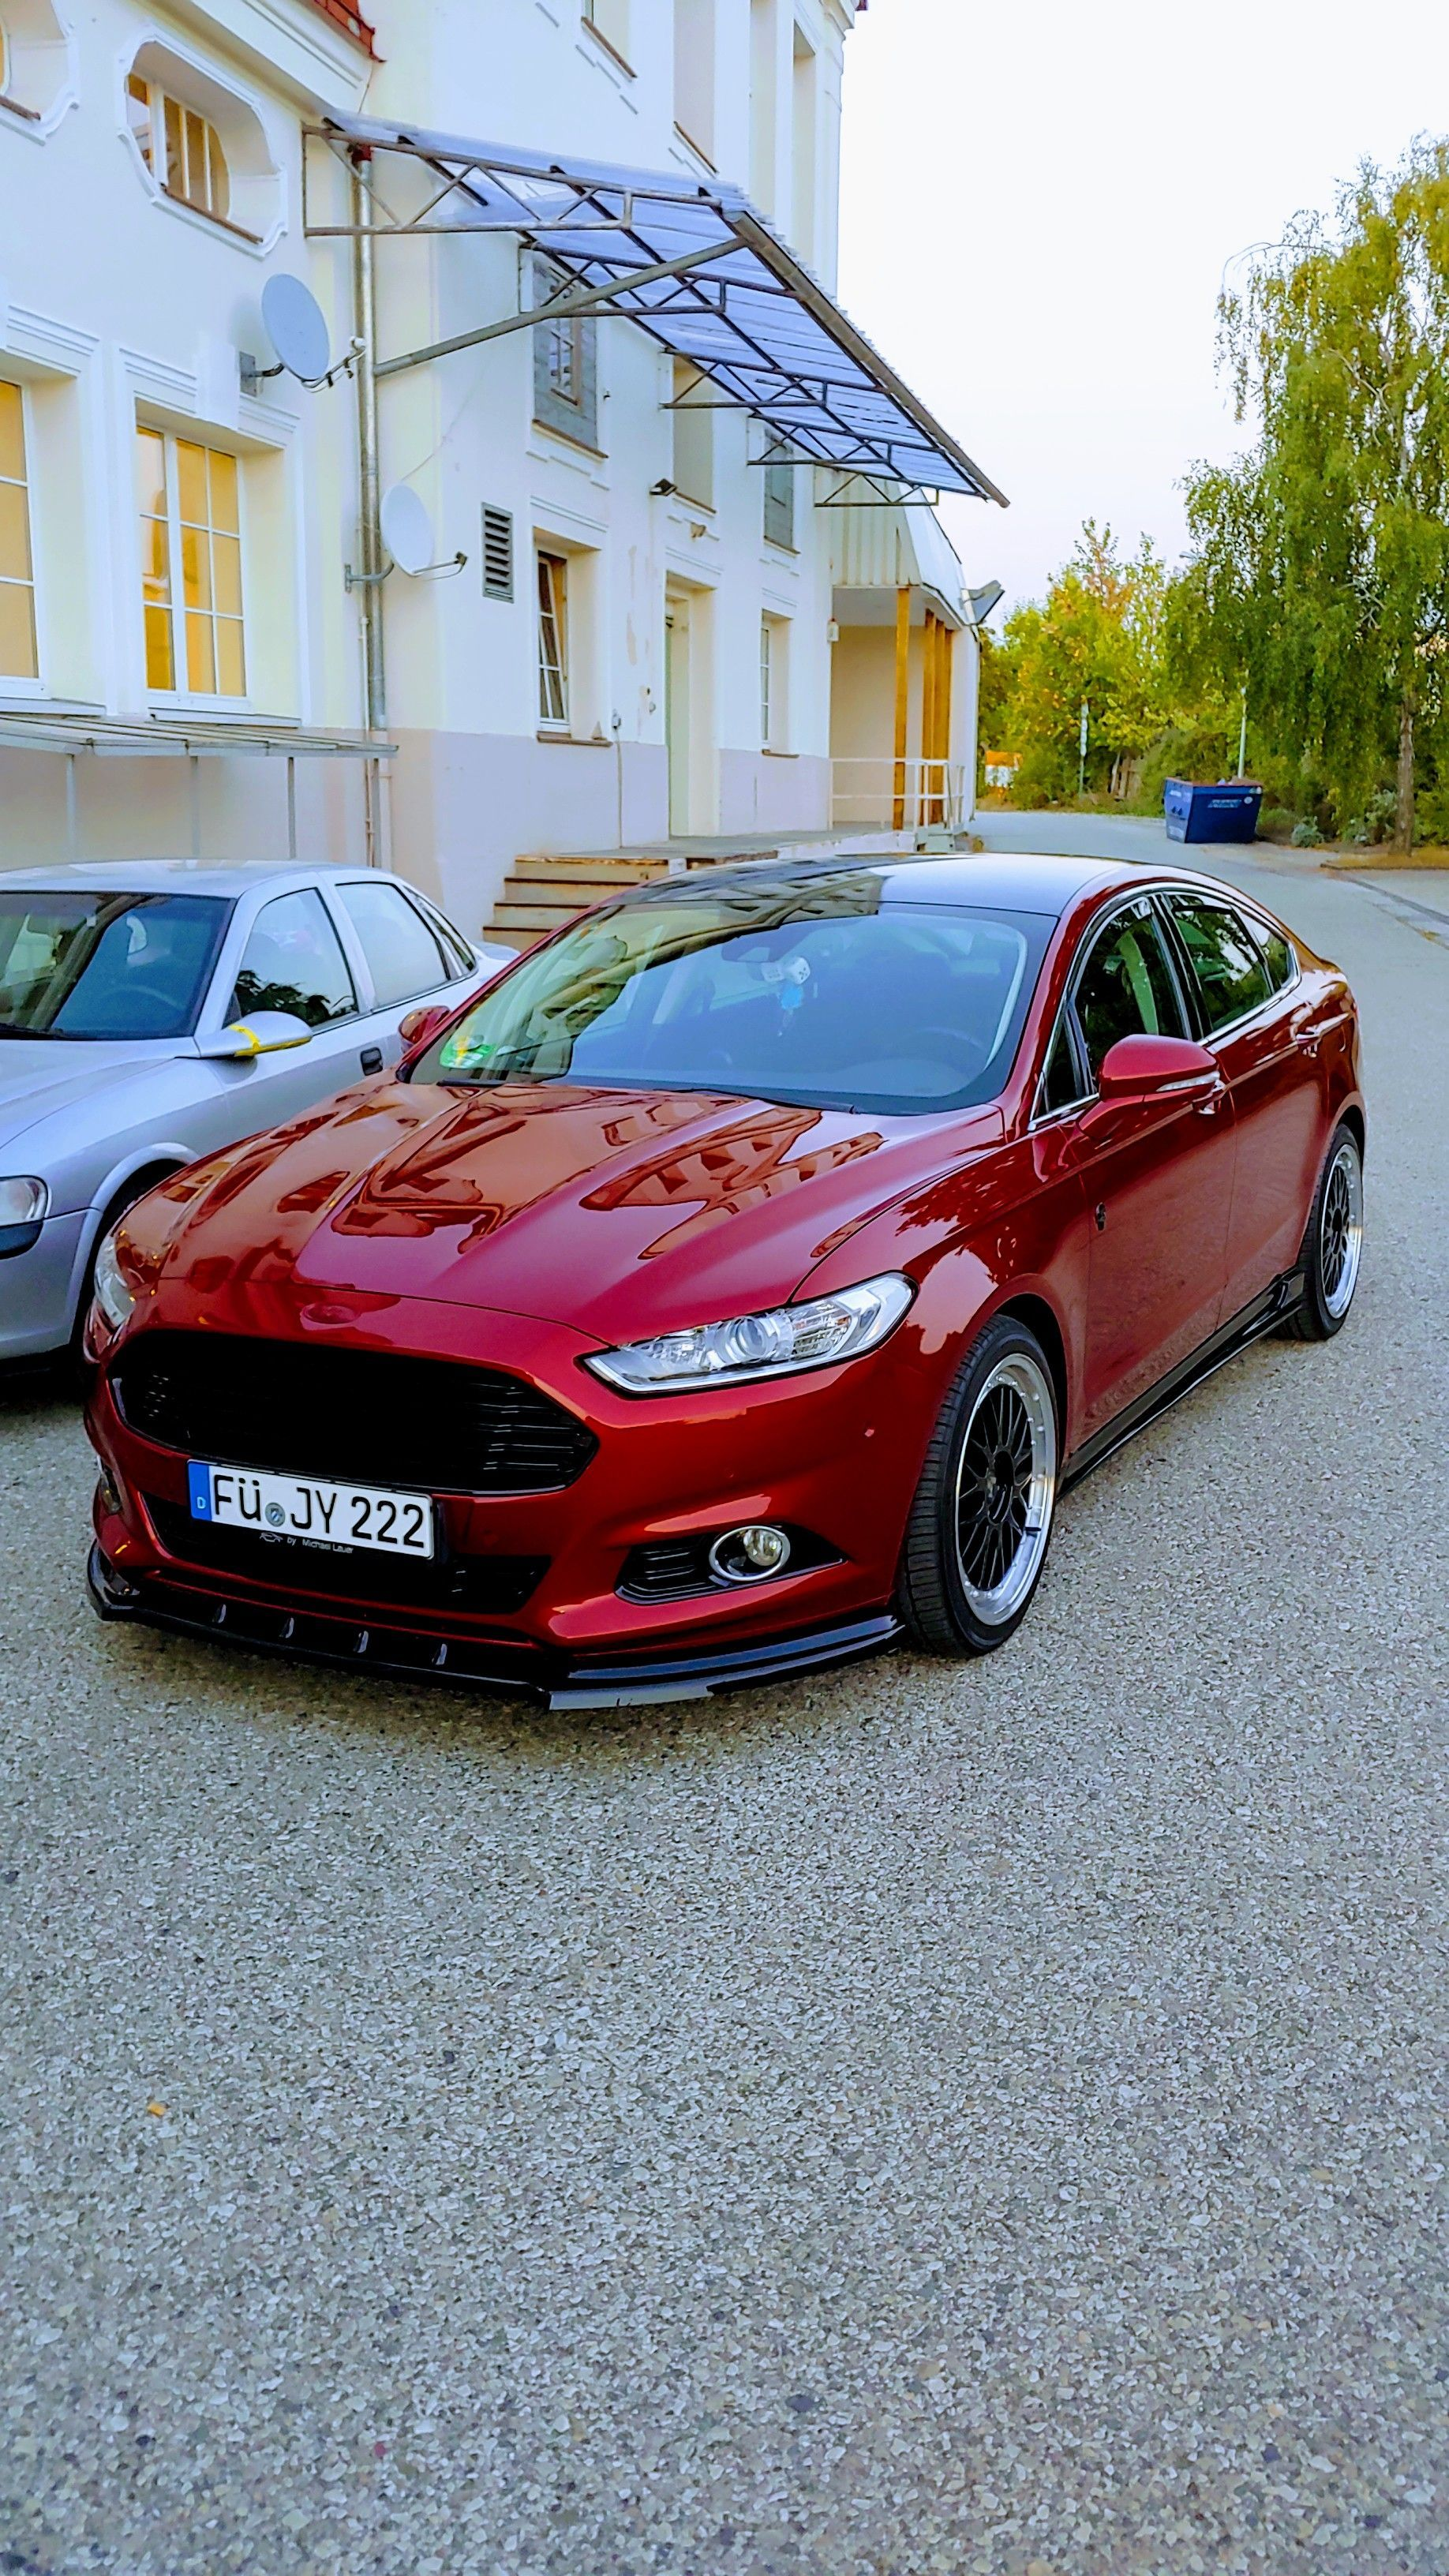 Ford Fusion Tuning Muscle Cars Ford Fusion Tuning Muscle Cars Ford